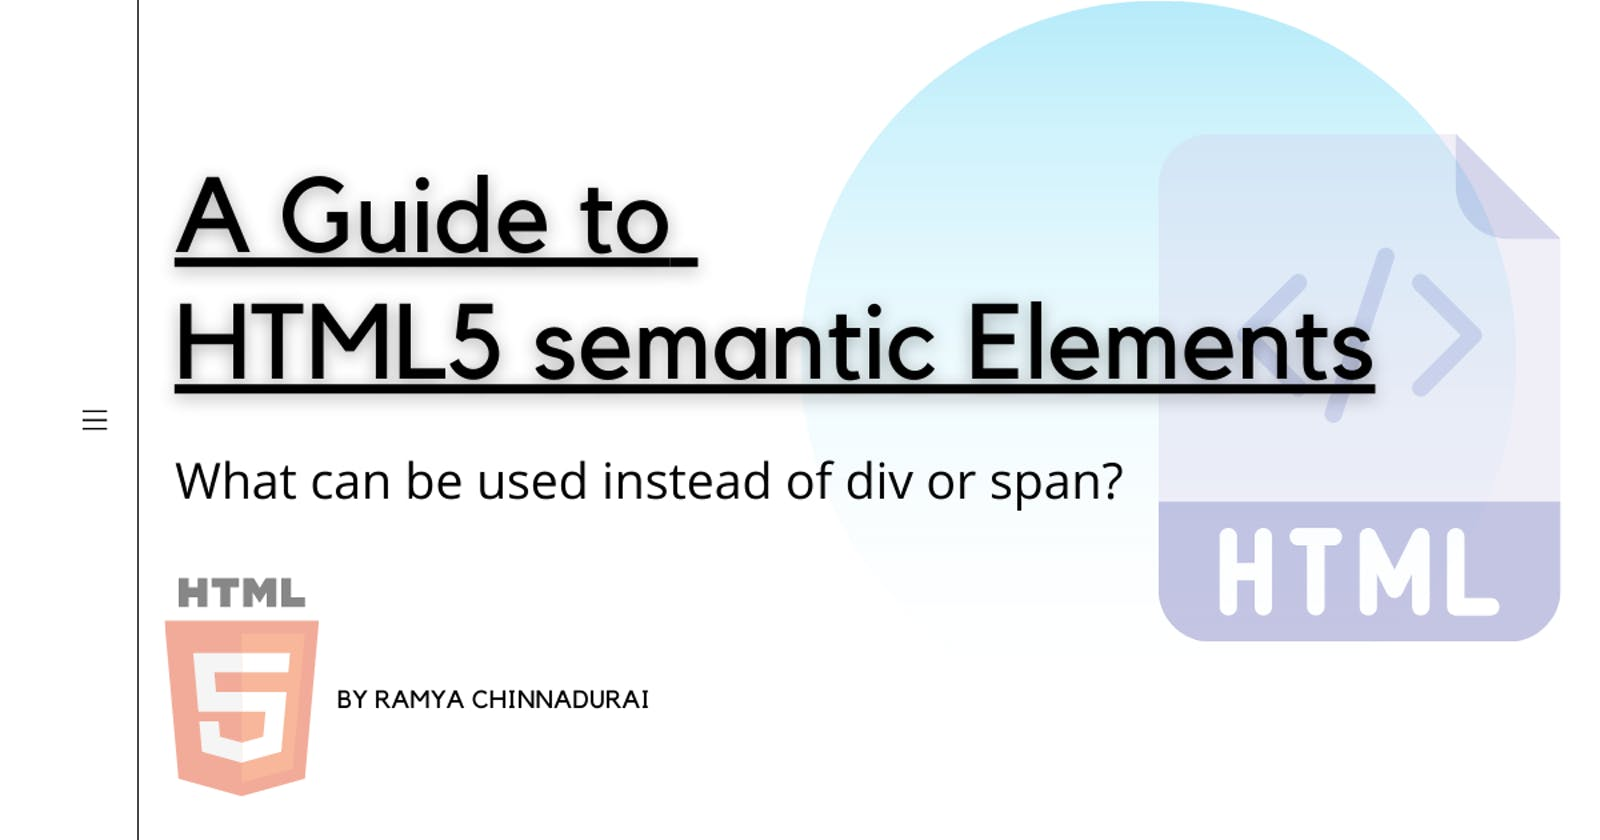 A guide to HTML5 semantic Elements